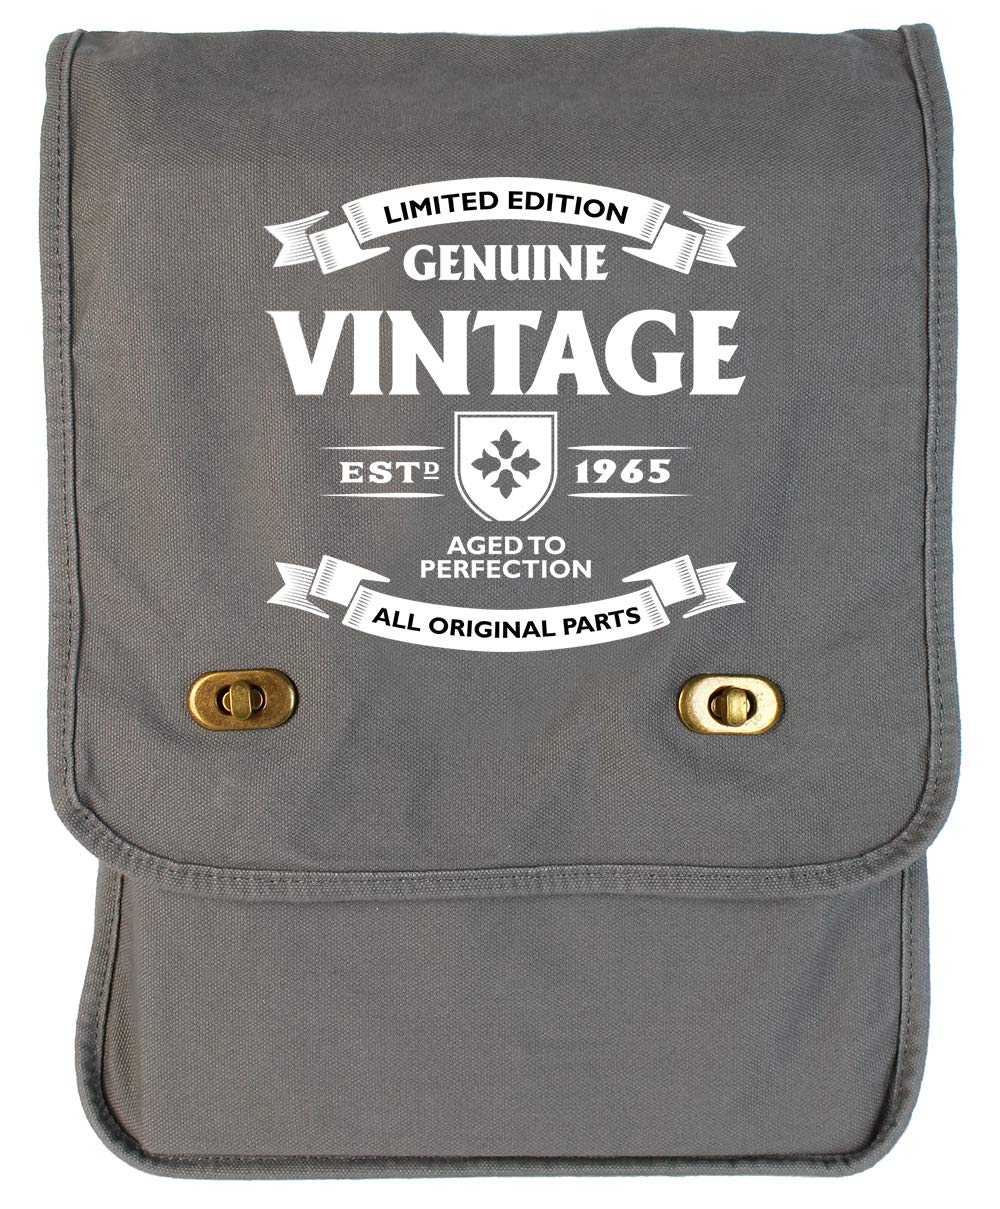 1965 Grey Brushed Canvas Messenger Bag Tenacitee Aged to Perfection